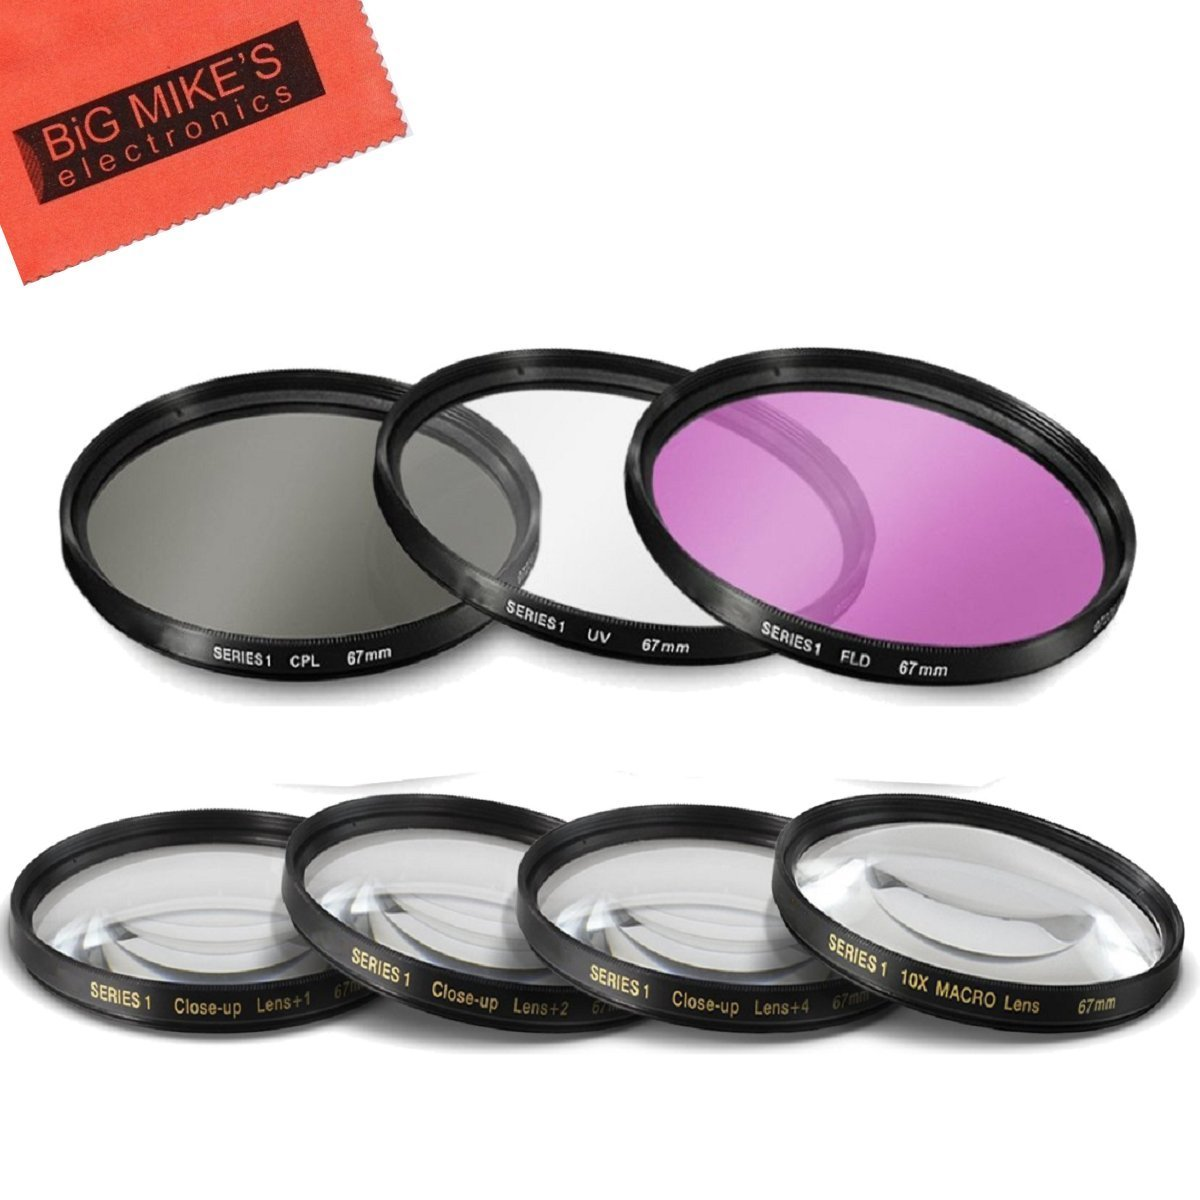 67mm Multi-Coated 7 Piece Filter Set Includes 3 PC Filter Kit (UV-CPL-FLD-) And 4 PC Close Up Filter Set (+1+2+4+10) for Nikon CoolPix P900 Digital Camera